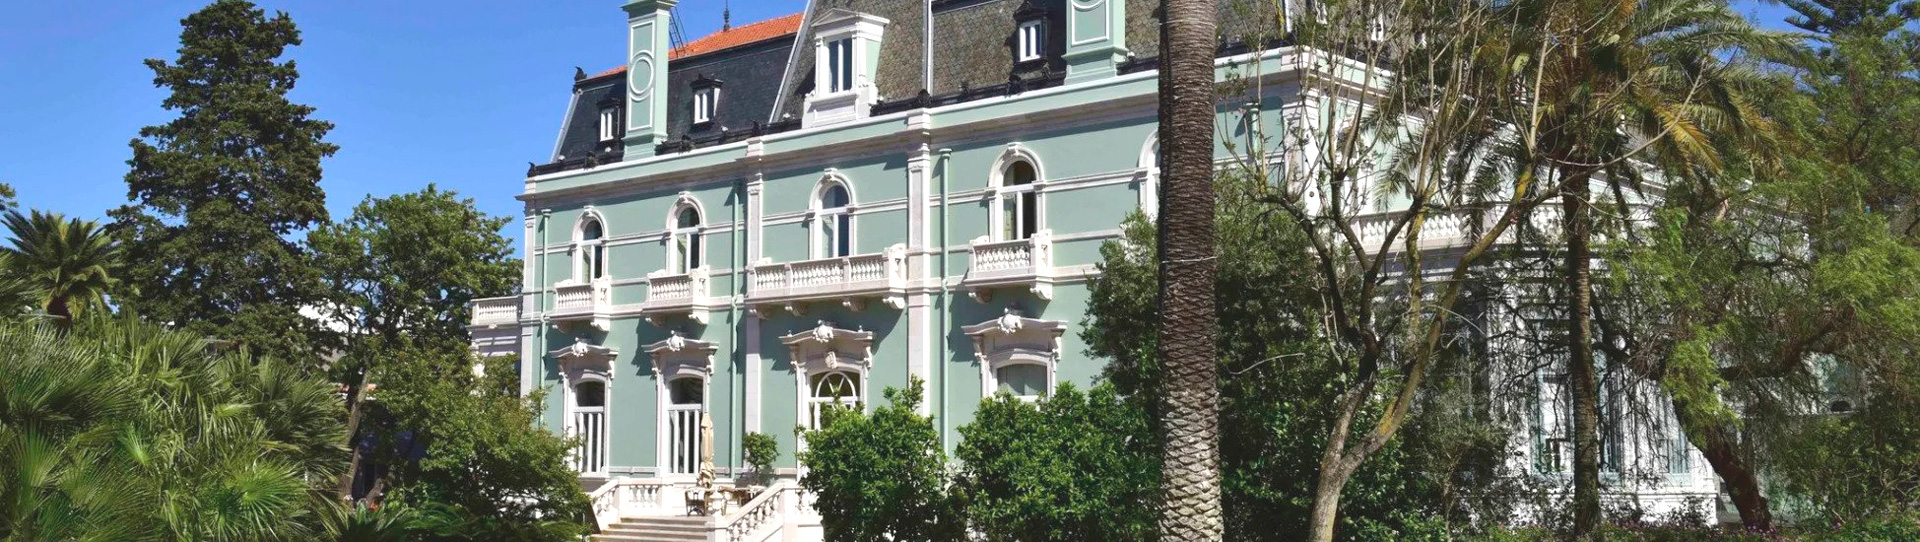 Pestana Palace Lisboa - Photo 1